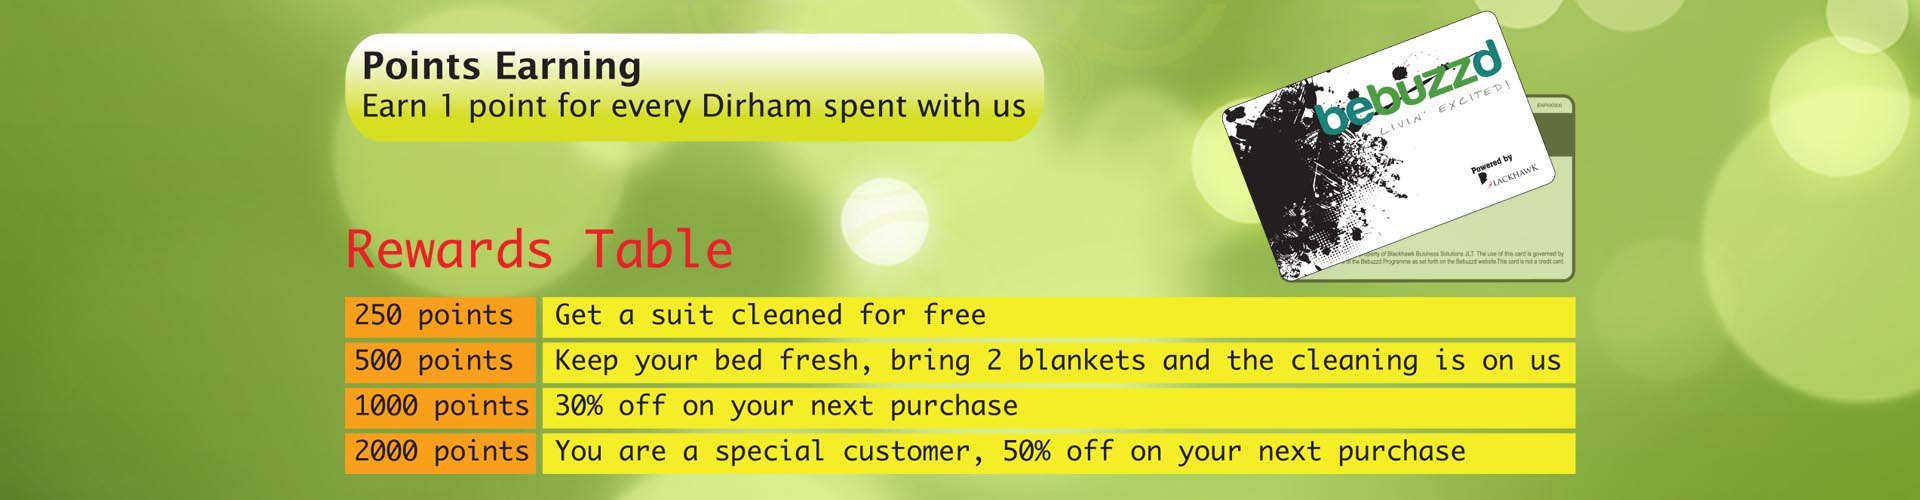 Blossom dry cleaning loyalty program